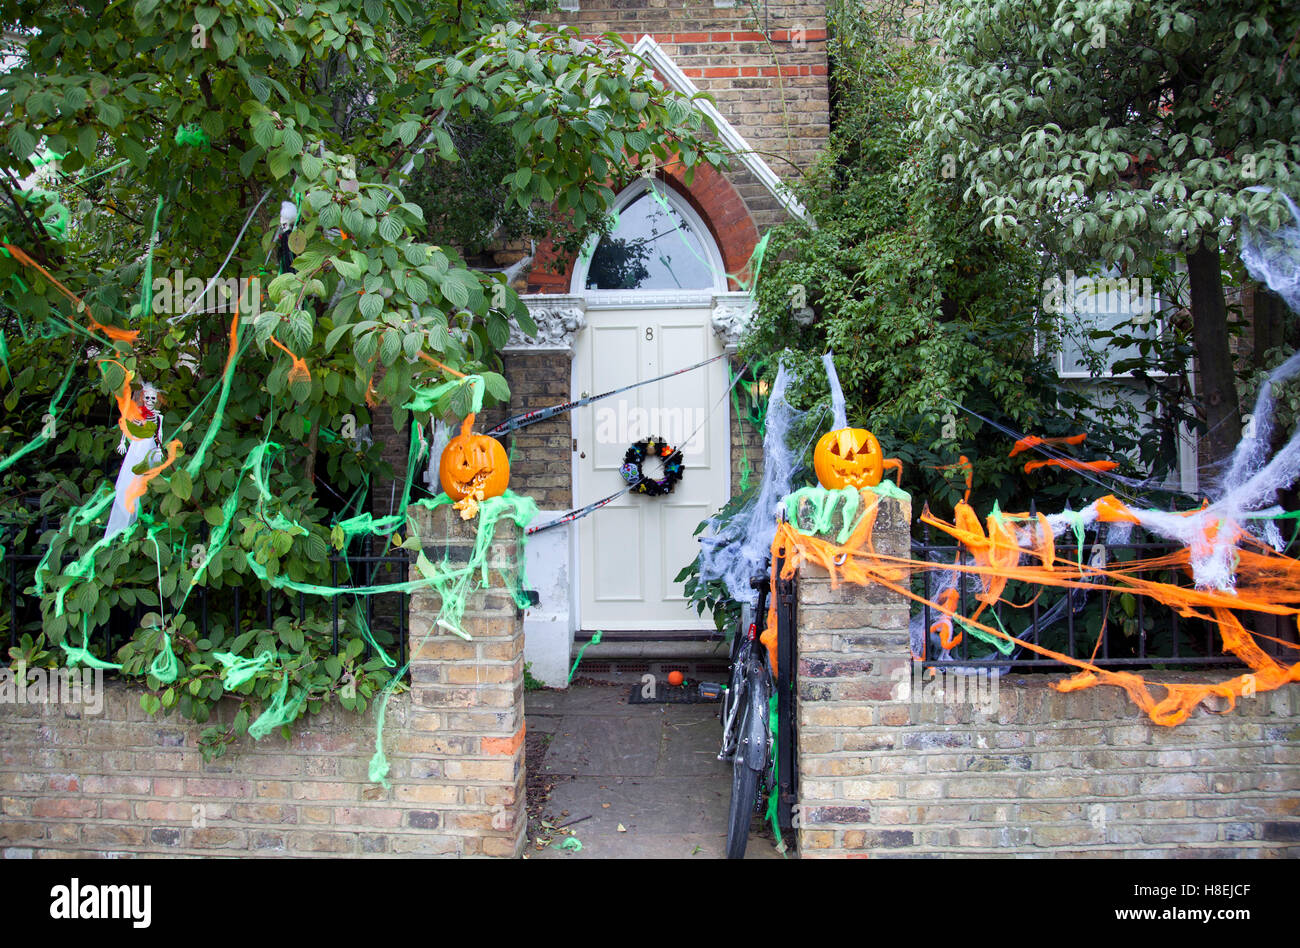 House in Halloween Decor in Battersea/ Wandsworth - London UK Stock ...